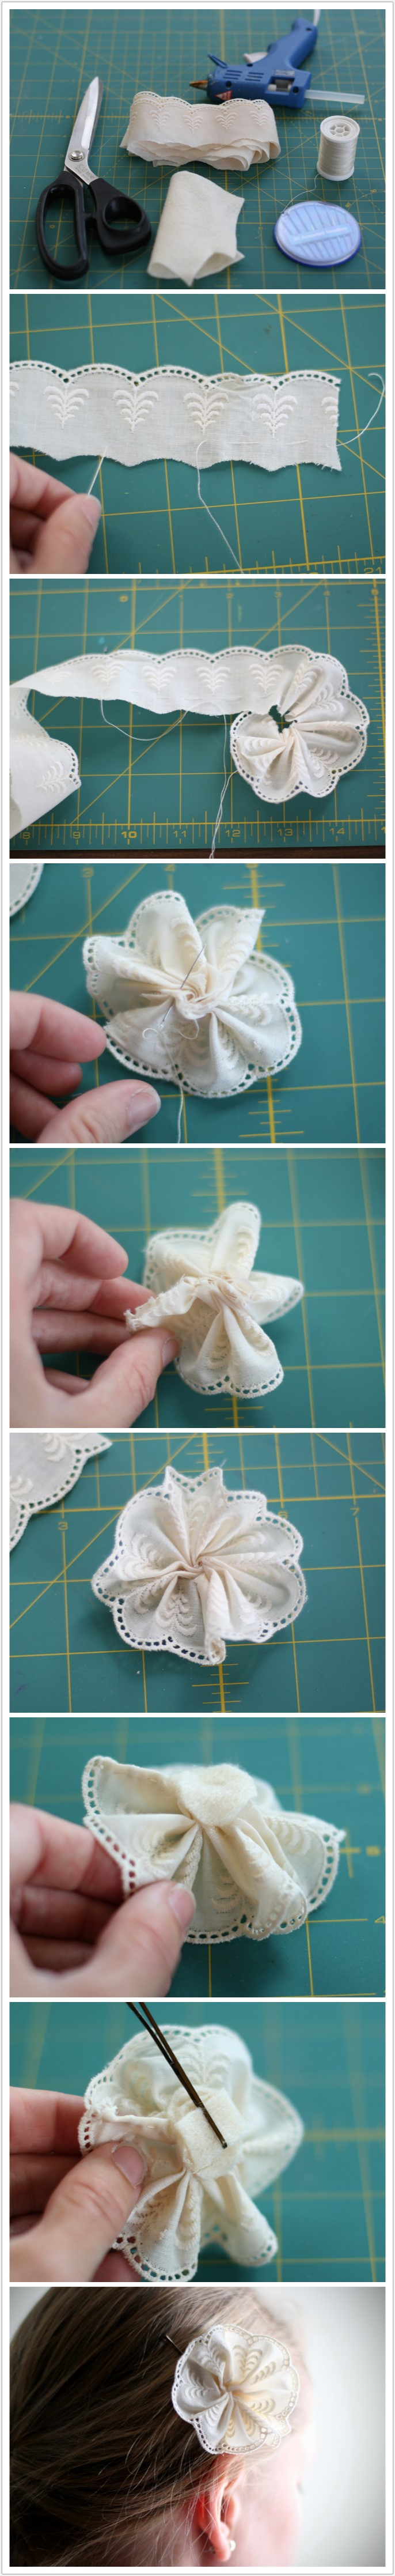 creative lace flower pin DIY Wonderful DIY lace flower pin